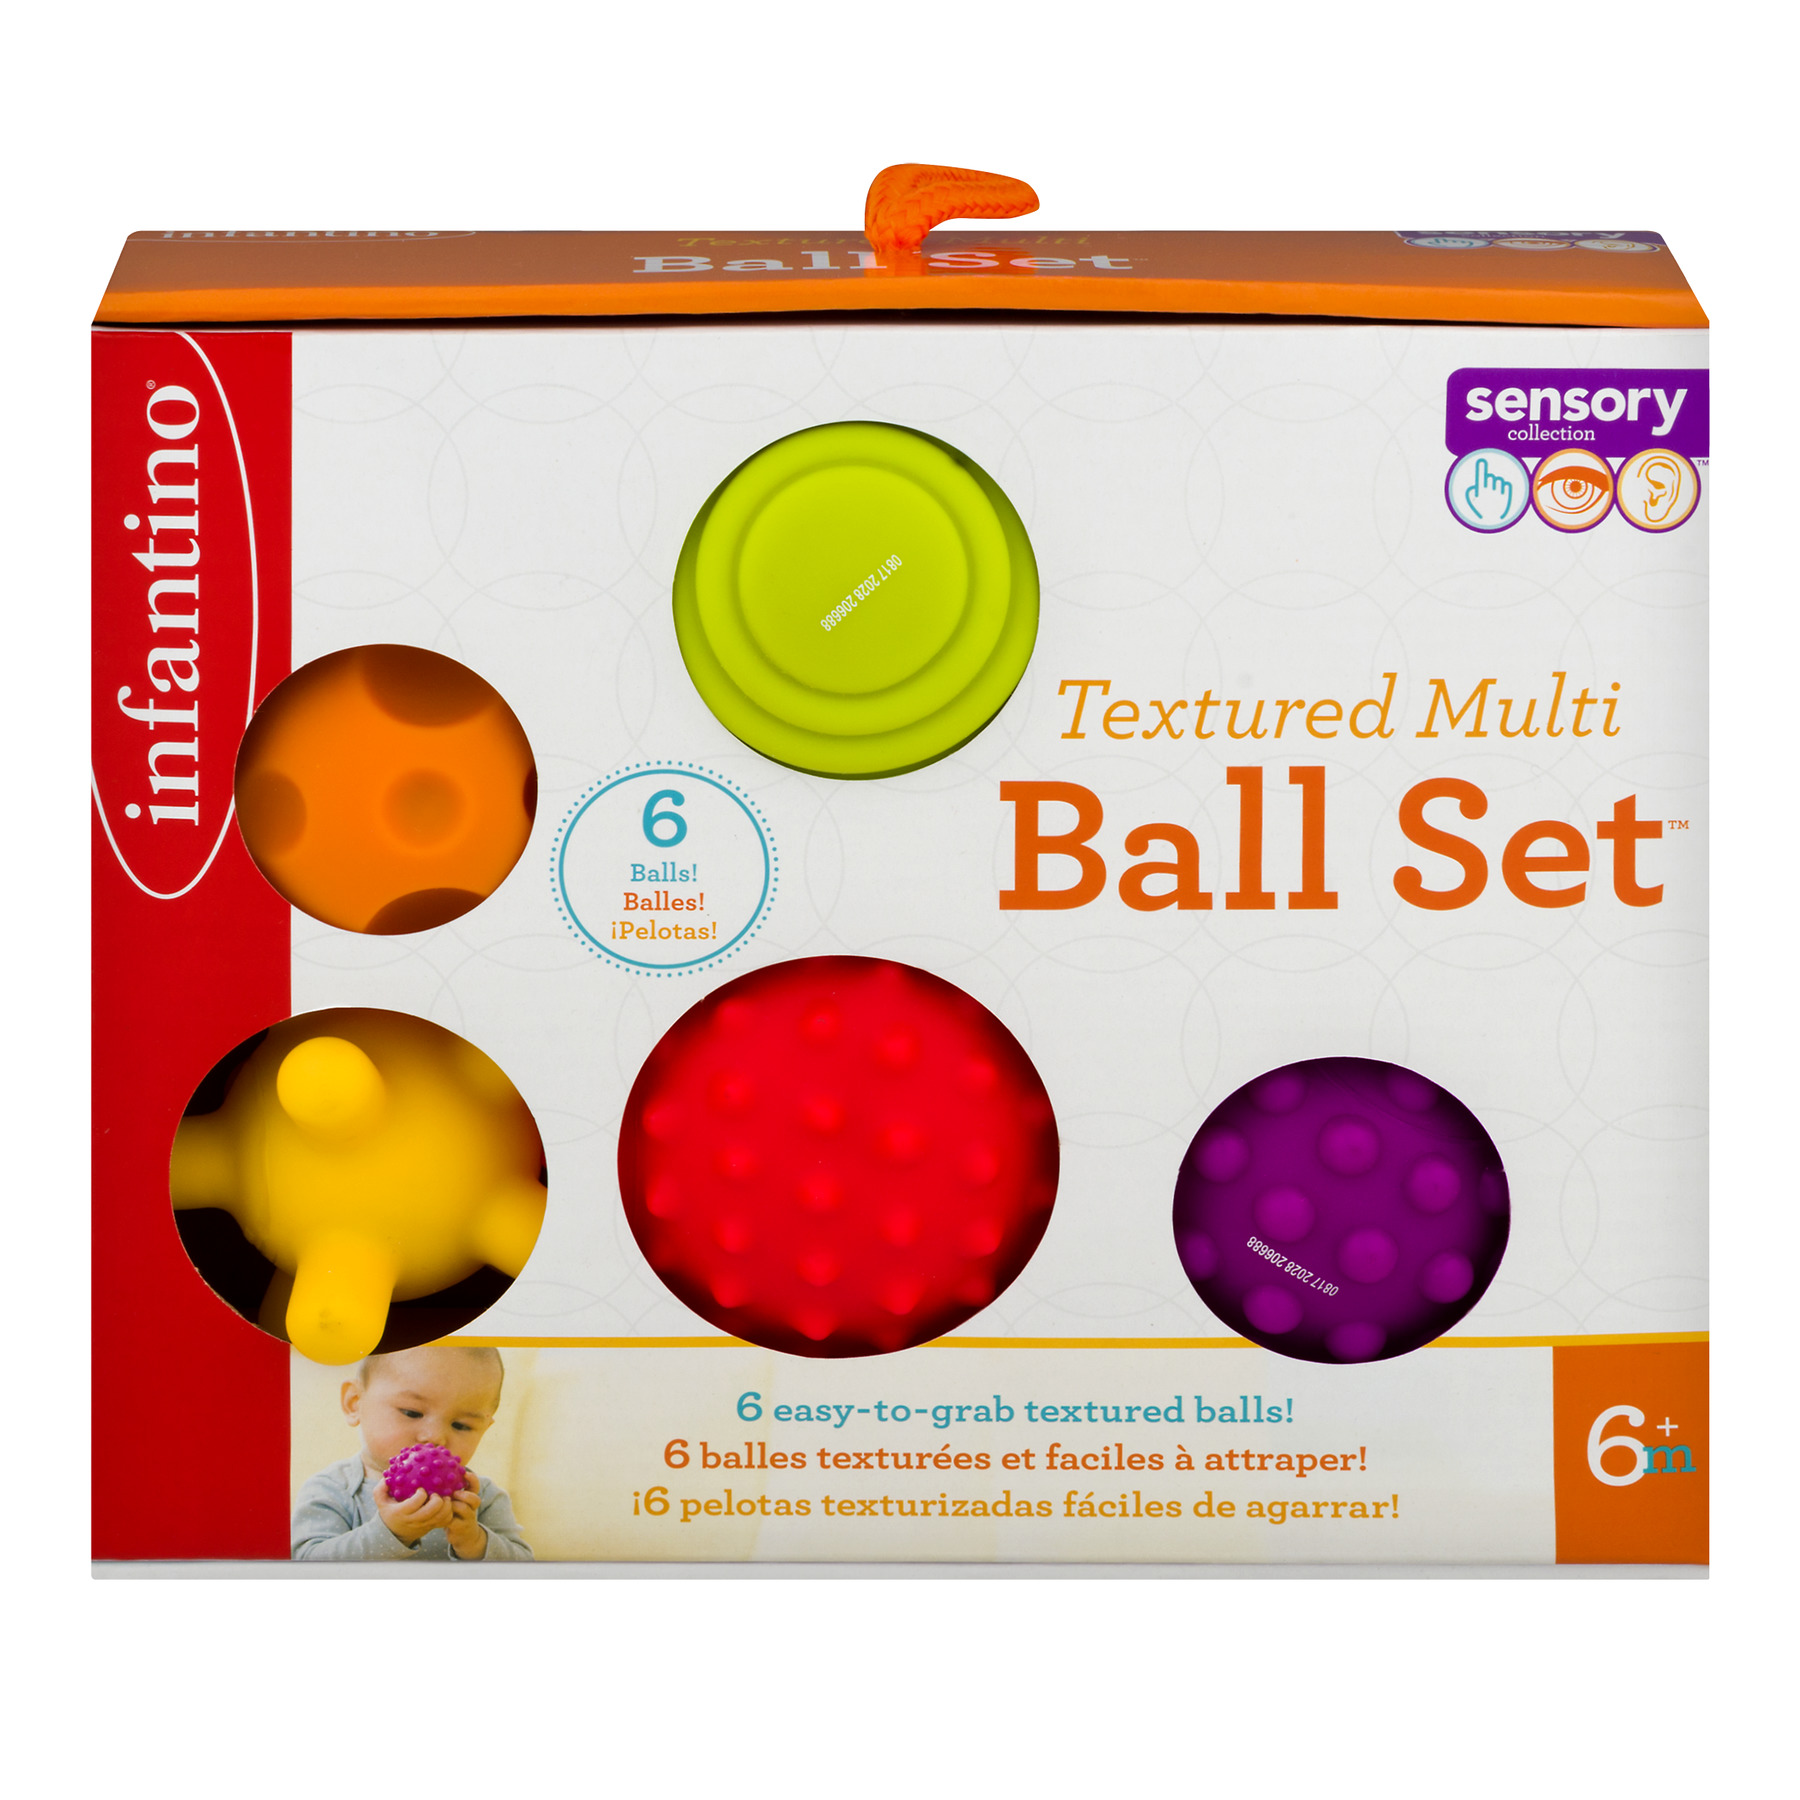 Infantino Textured Multi Ball Set 6m+- 6 CT6.0 CT